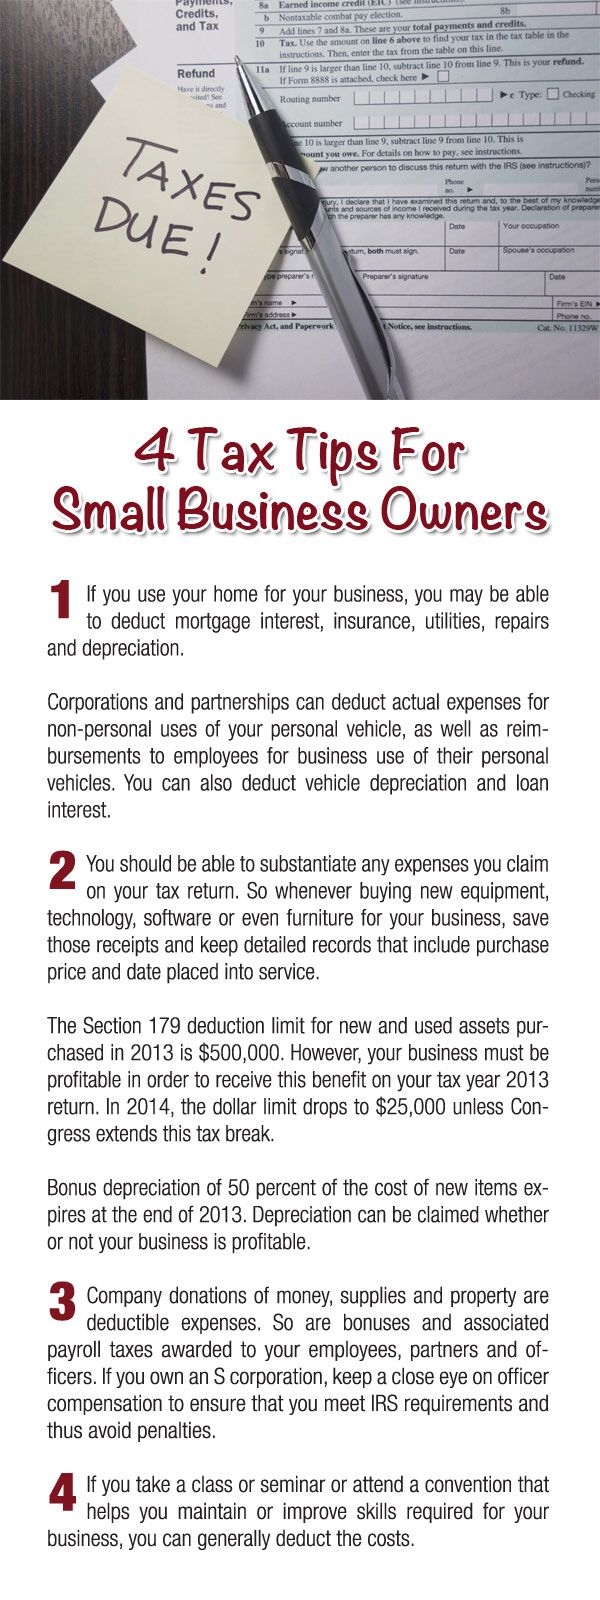 4 Tax Tips For Small Business Owners Tips Taxes Small Business Tax Business Tax Small Business